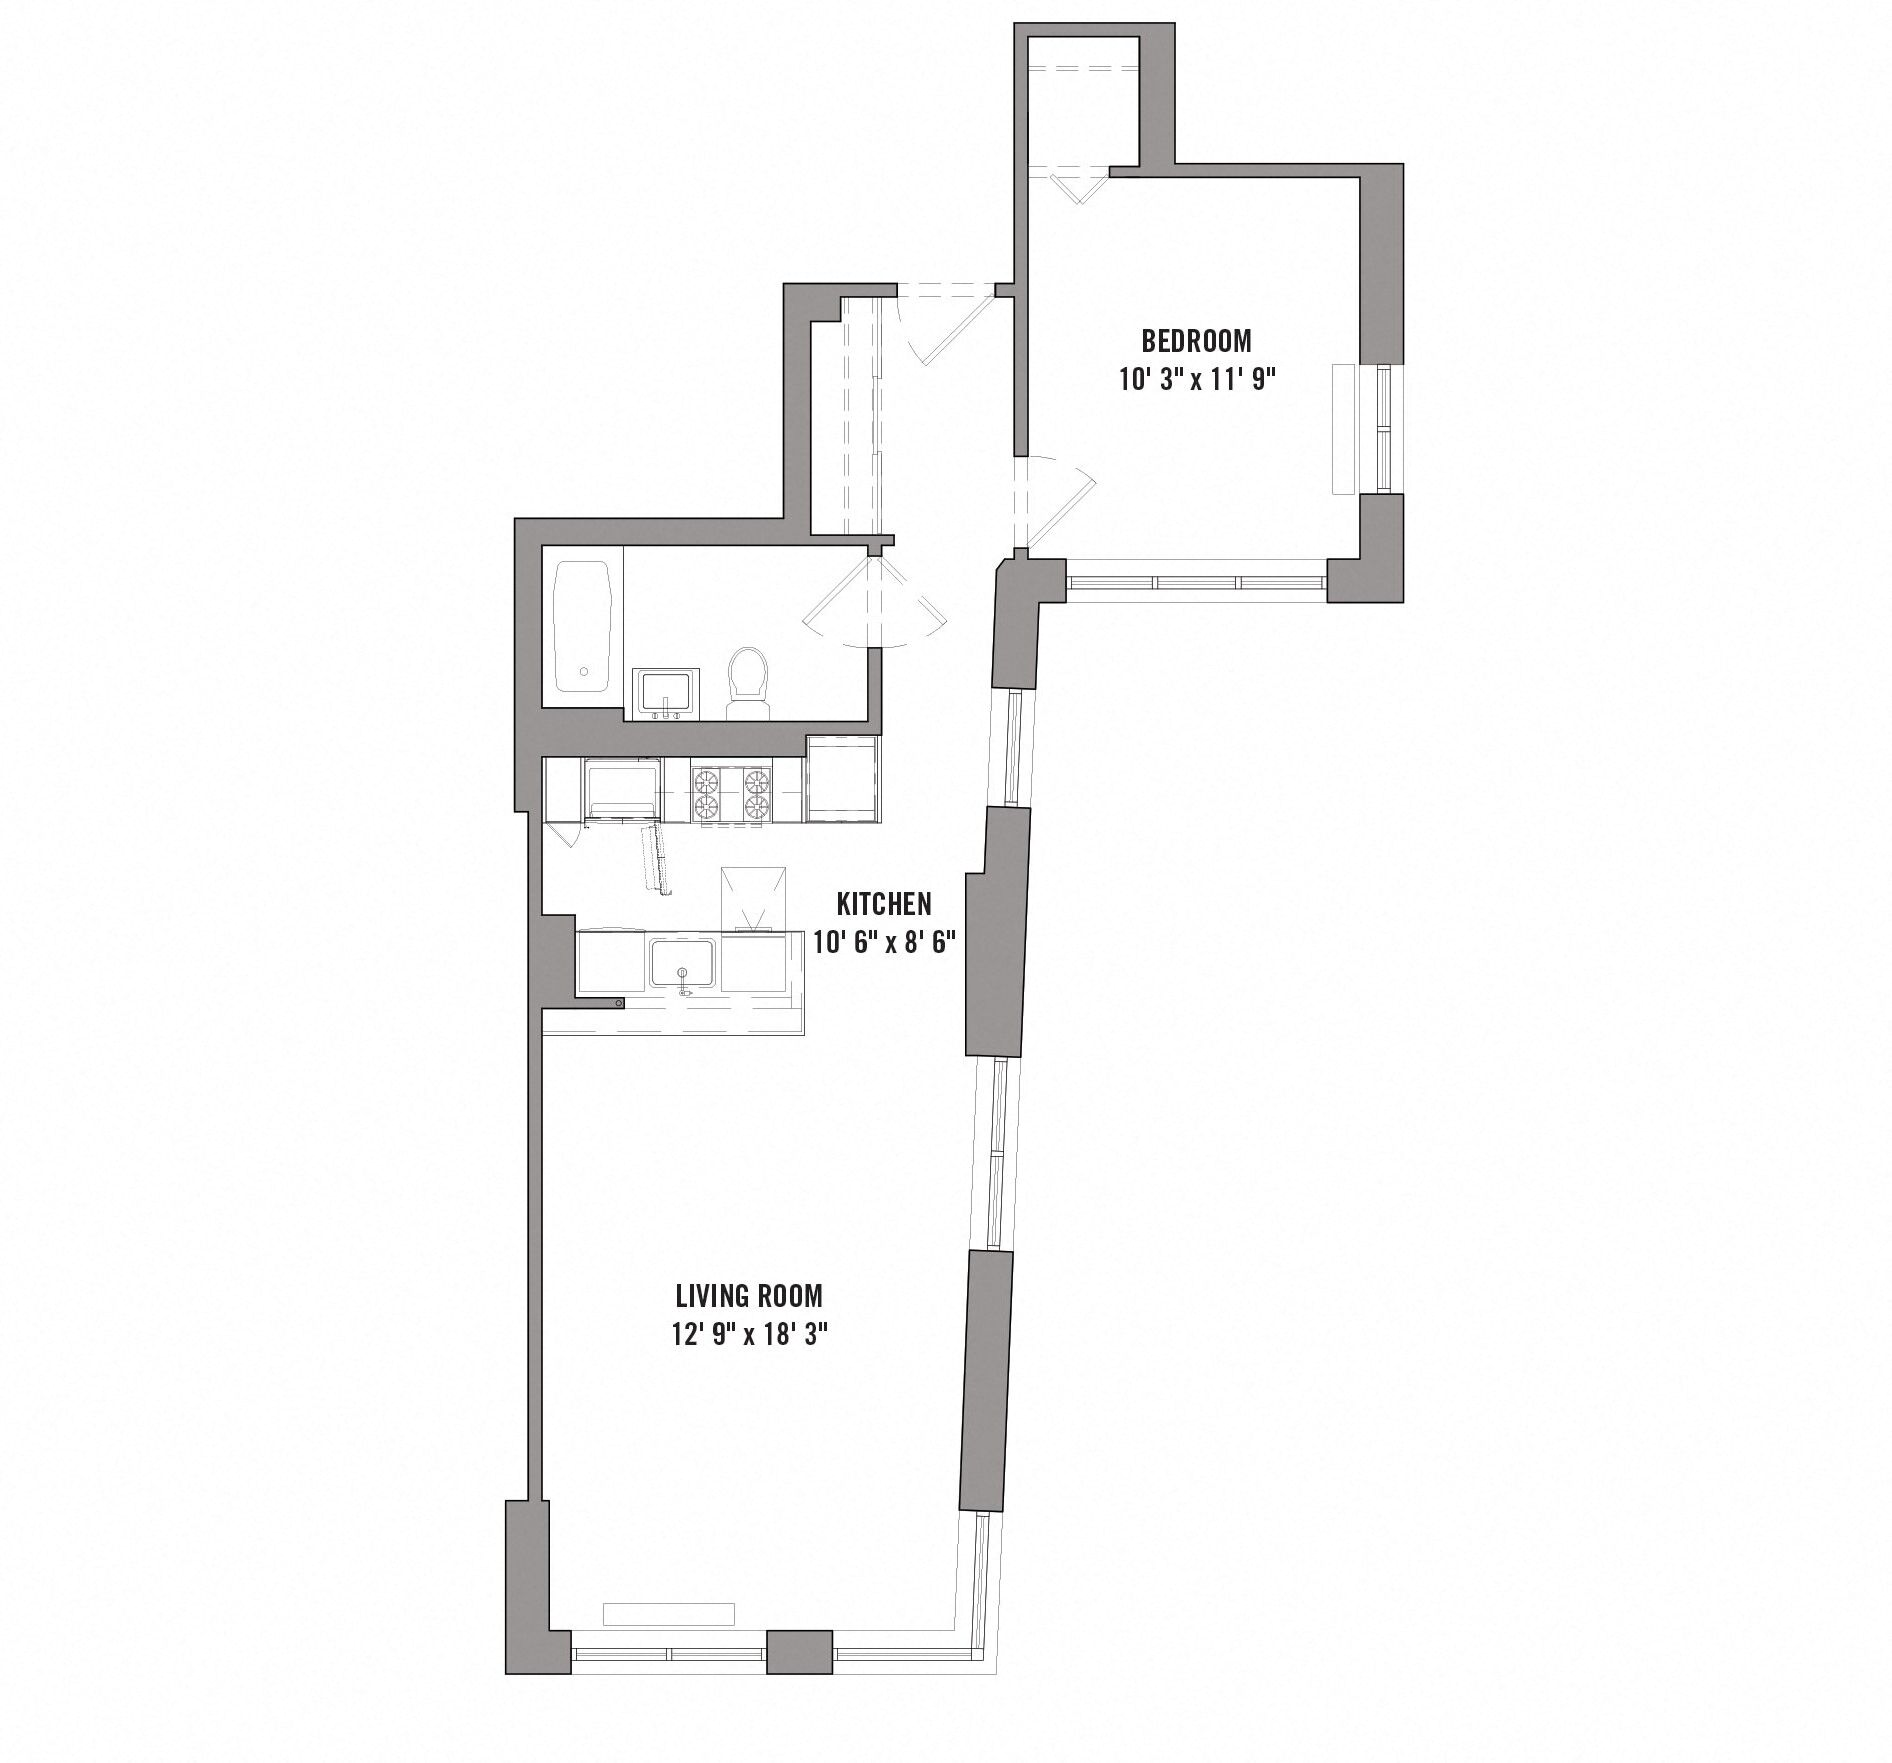 Floor plan diagram for unit A 3 15. 1 bedroom, 1 bathroom, kitchen, and living room.